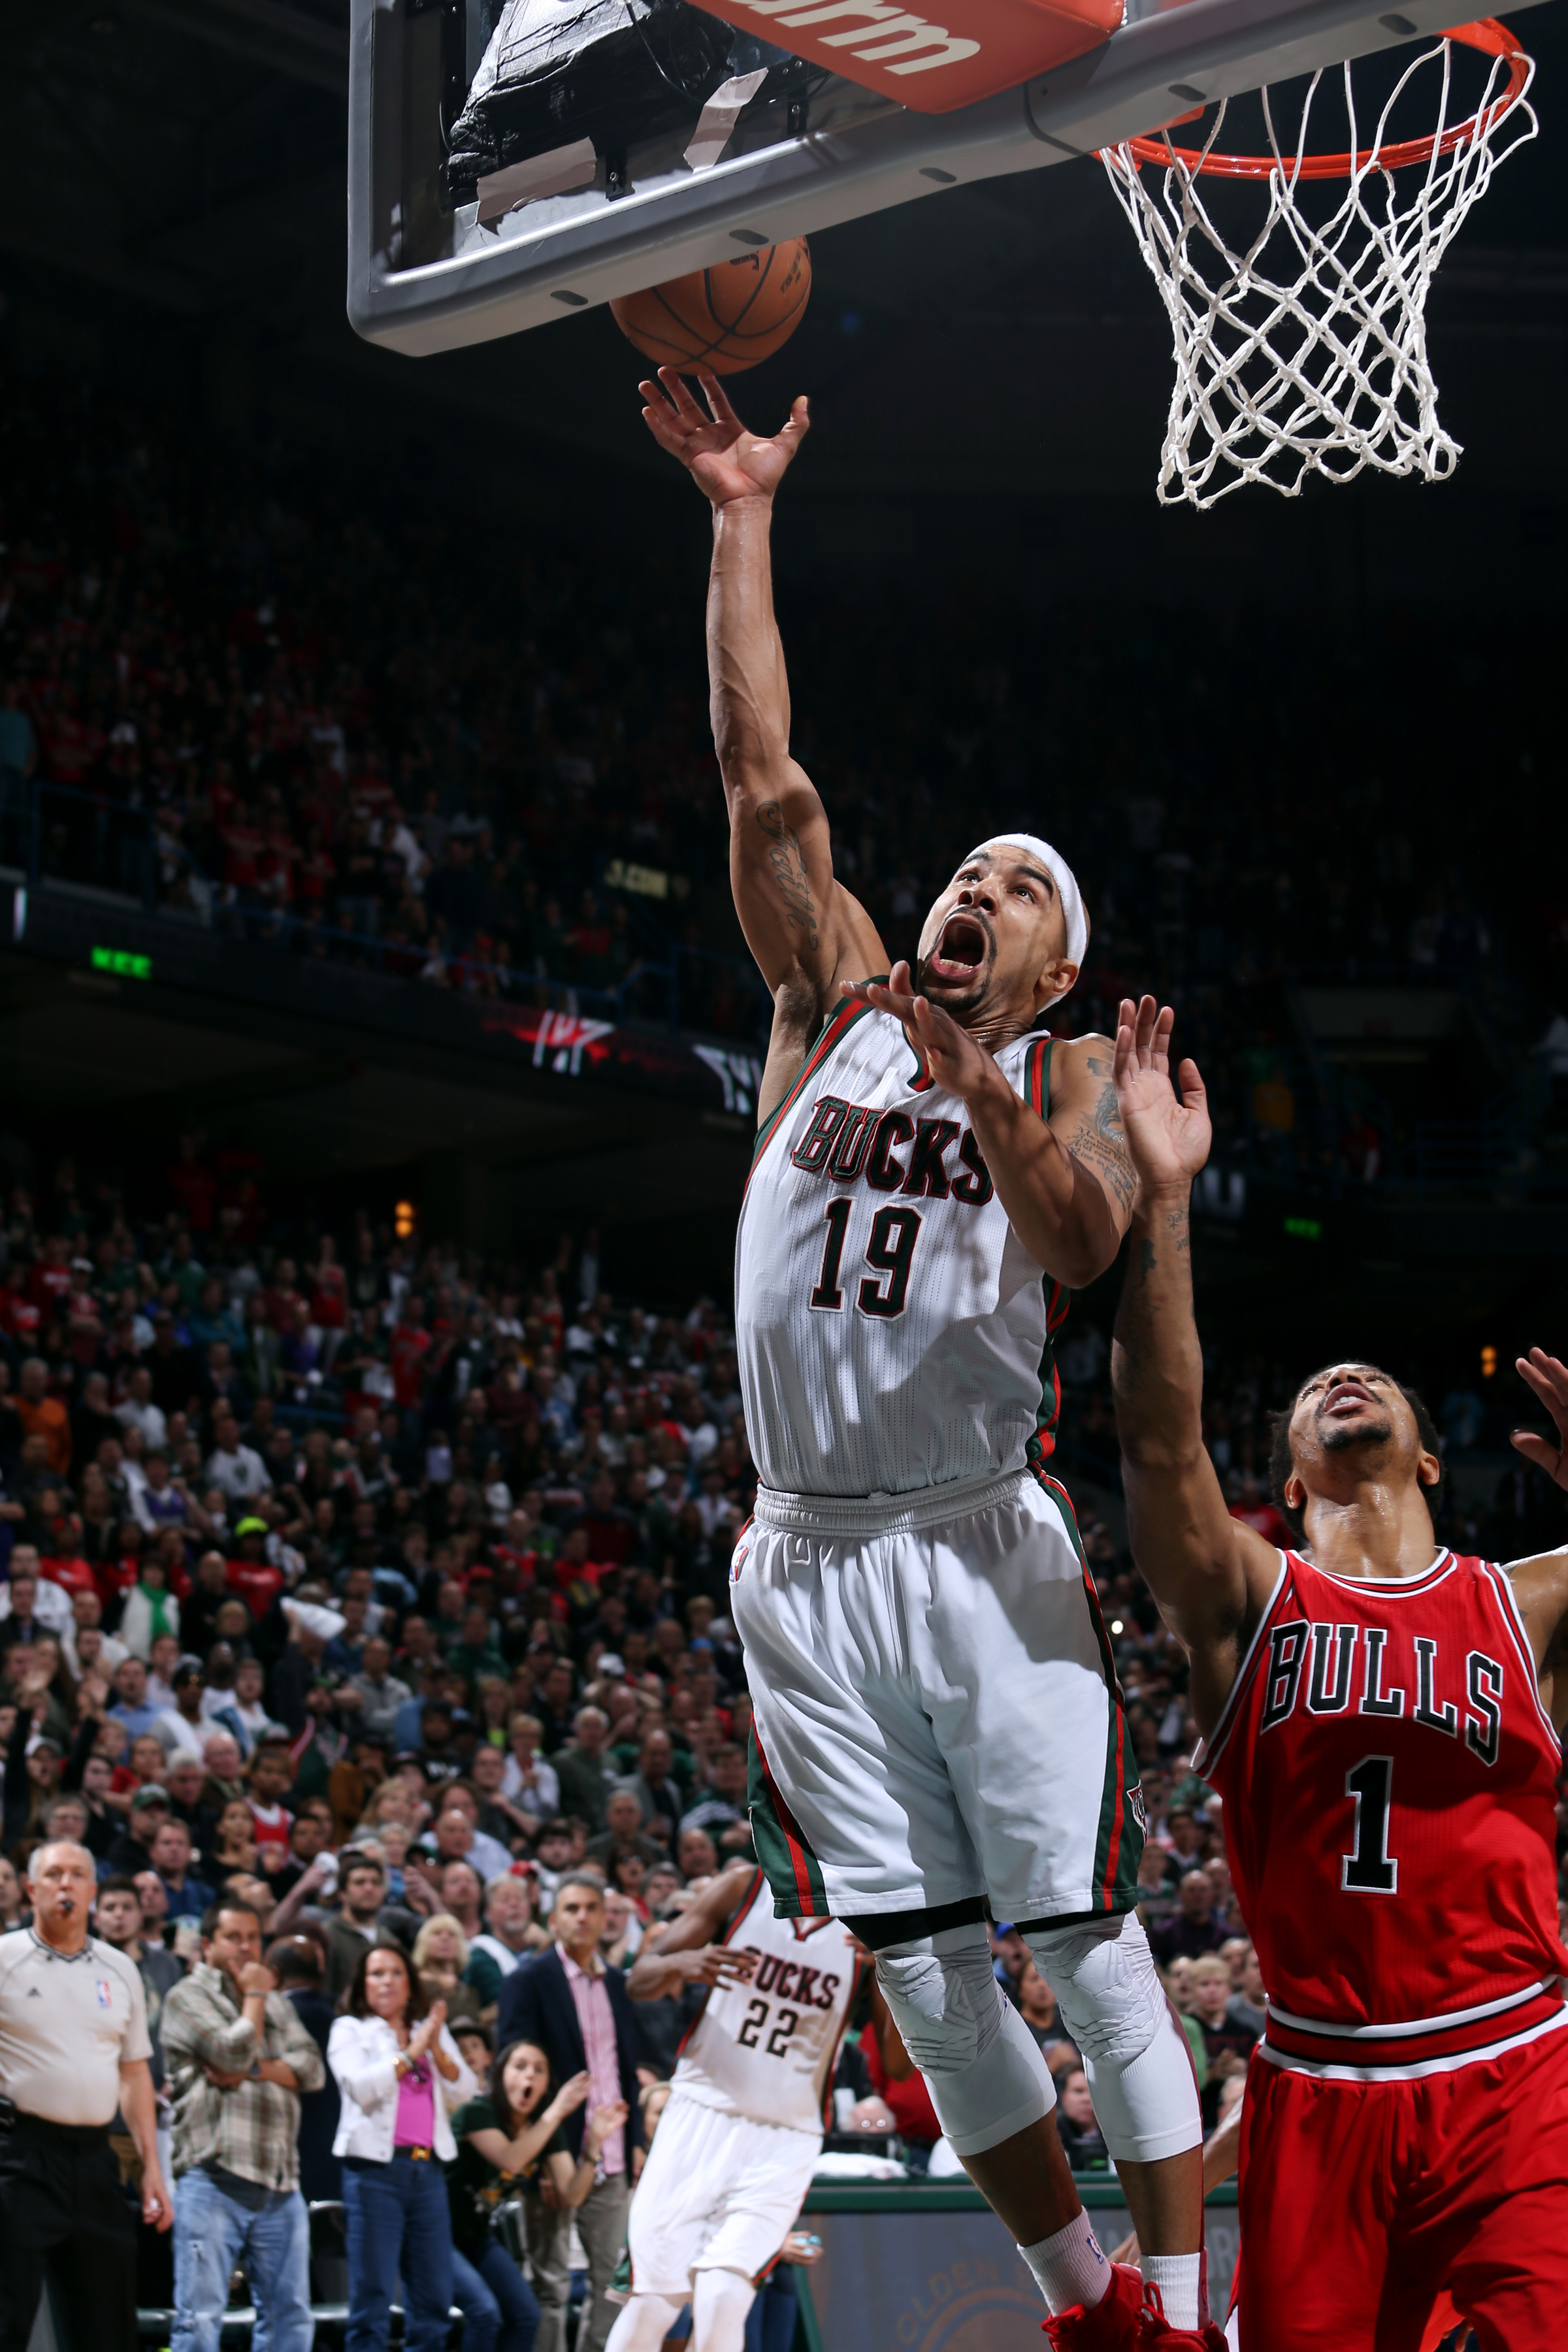 MILWAUKEE, WI - APRIL 25: Jerryd Bayless #19 of the Milwaukee Bucks shoots the game winning layup against the Chicago Bulls in Game Four of the Eastern Conference Quarterfinals during the 2015 NBA Playoffs on April 25, 2015 at the BMO Harris Bradley Cente